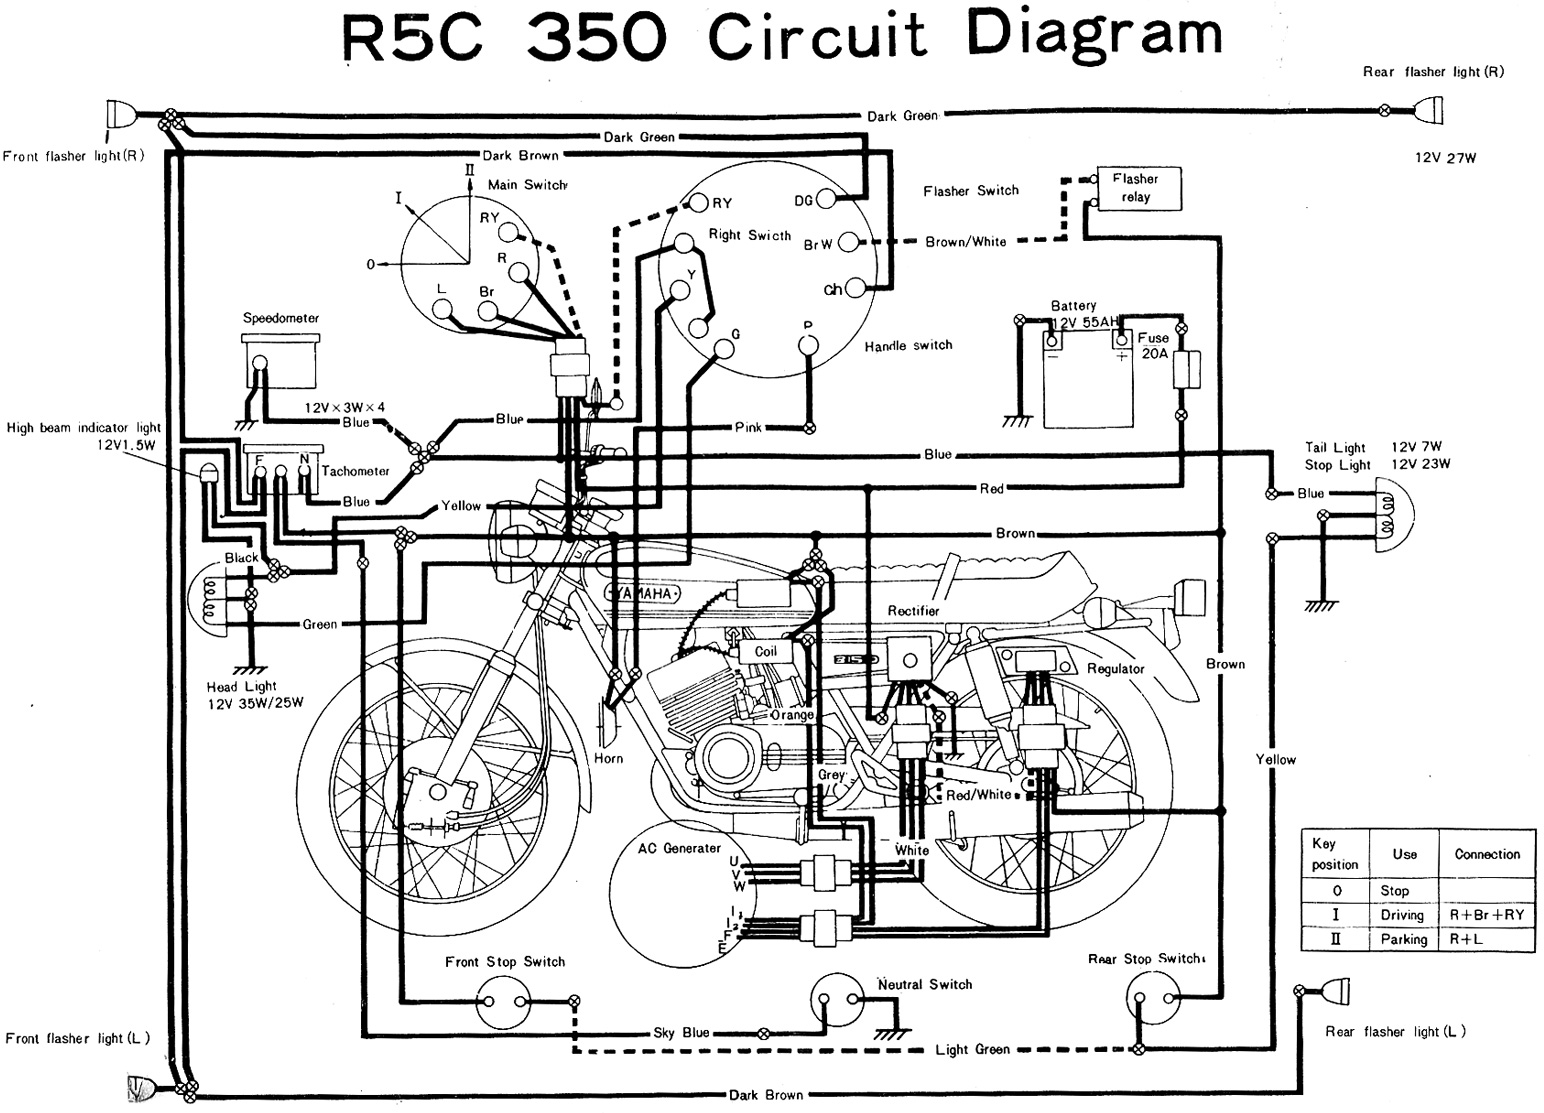 evan fell motorcycle works – my name is evan and my hobby ... yamaha g1 wiring diagram yamaha motor wiring diagram